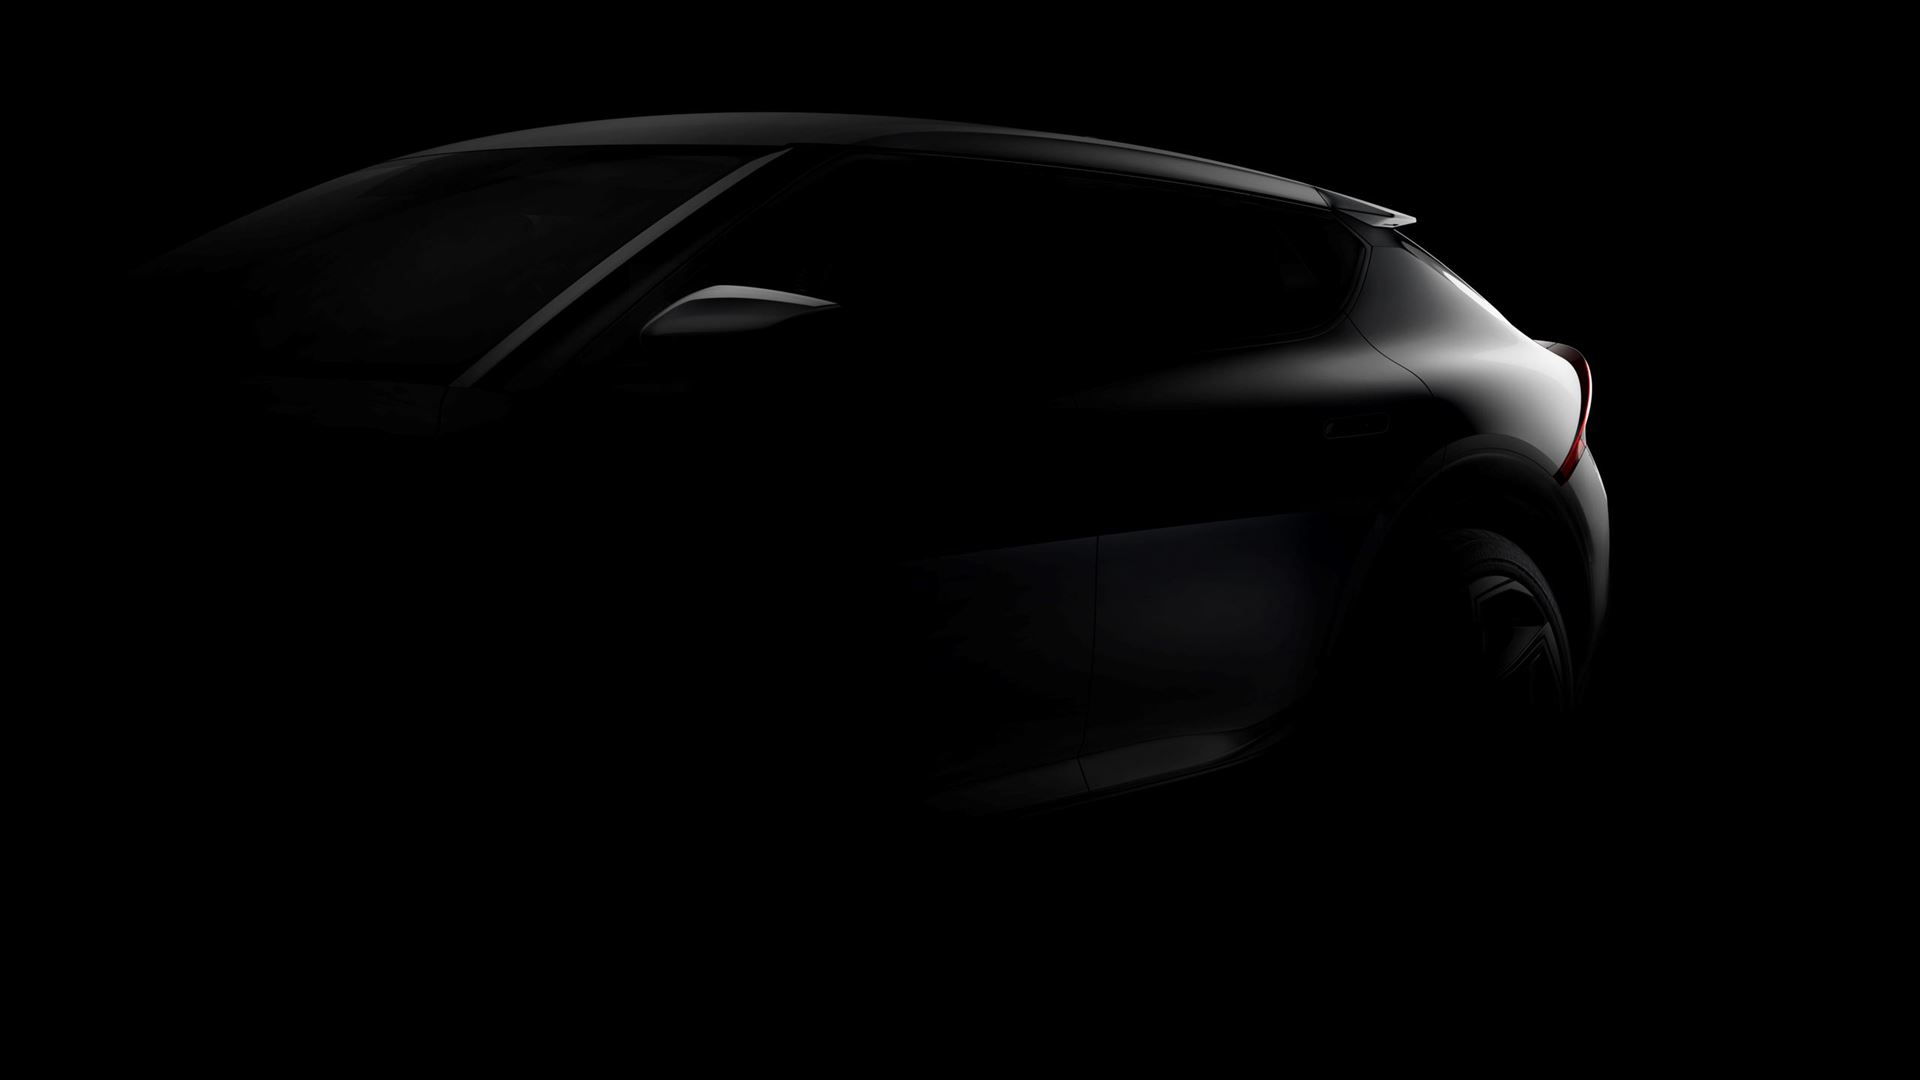 Kia teases EV6, its first dedicated EV - Image 2